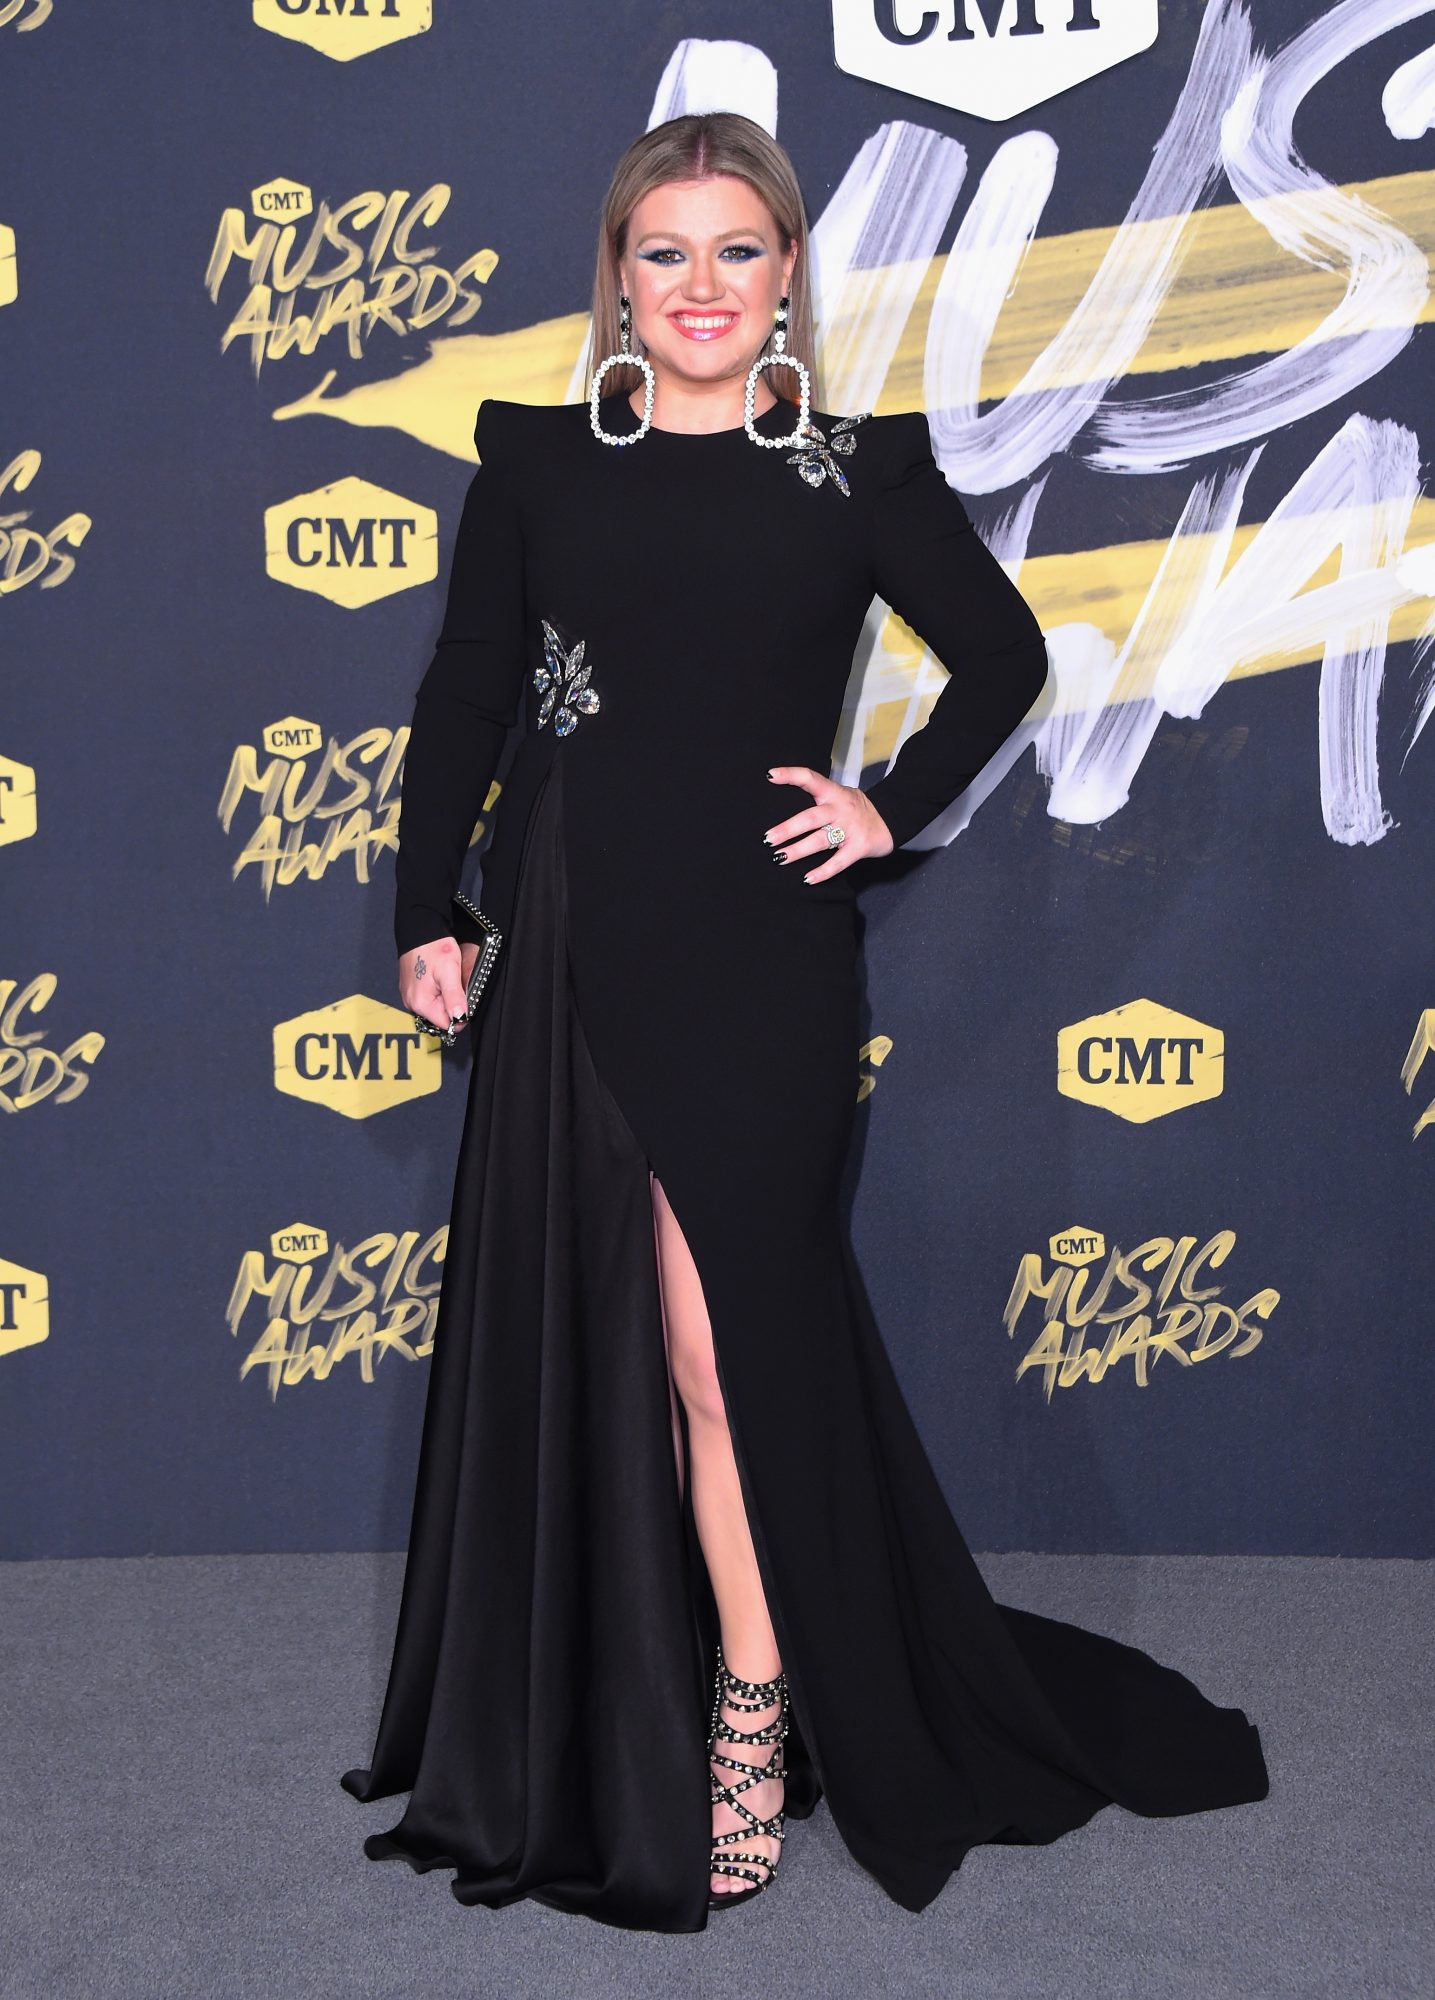 Kelly Clarkson attends the 2018 CMT Music Awards